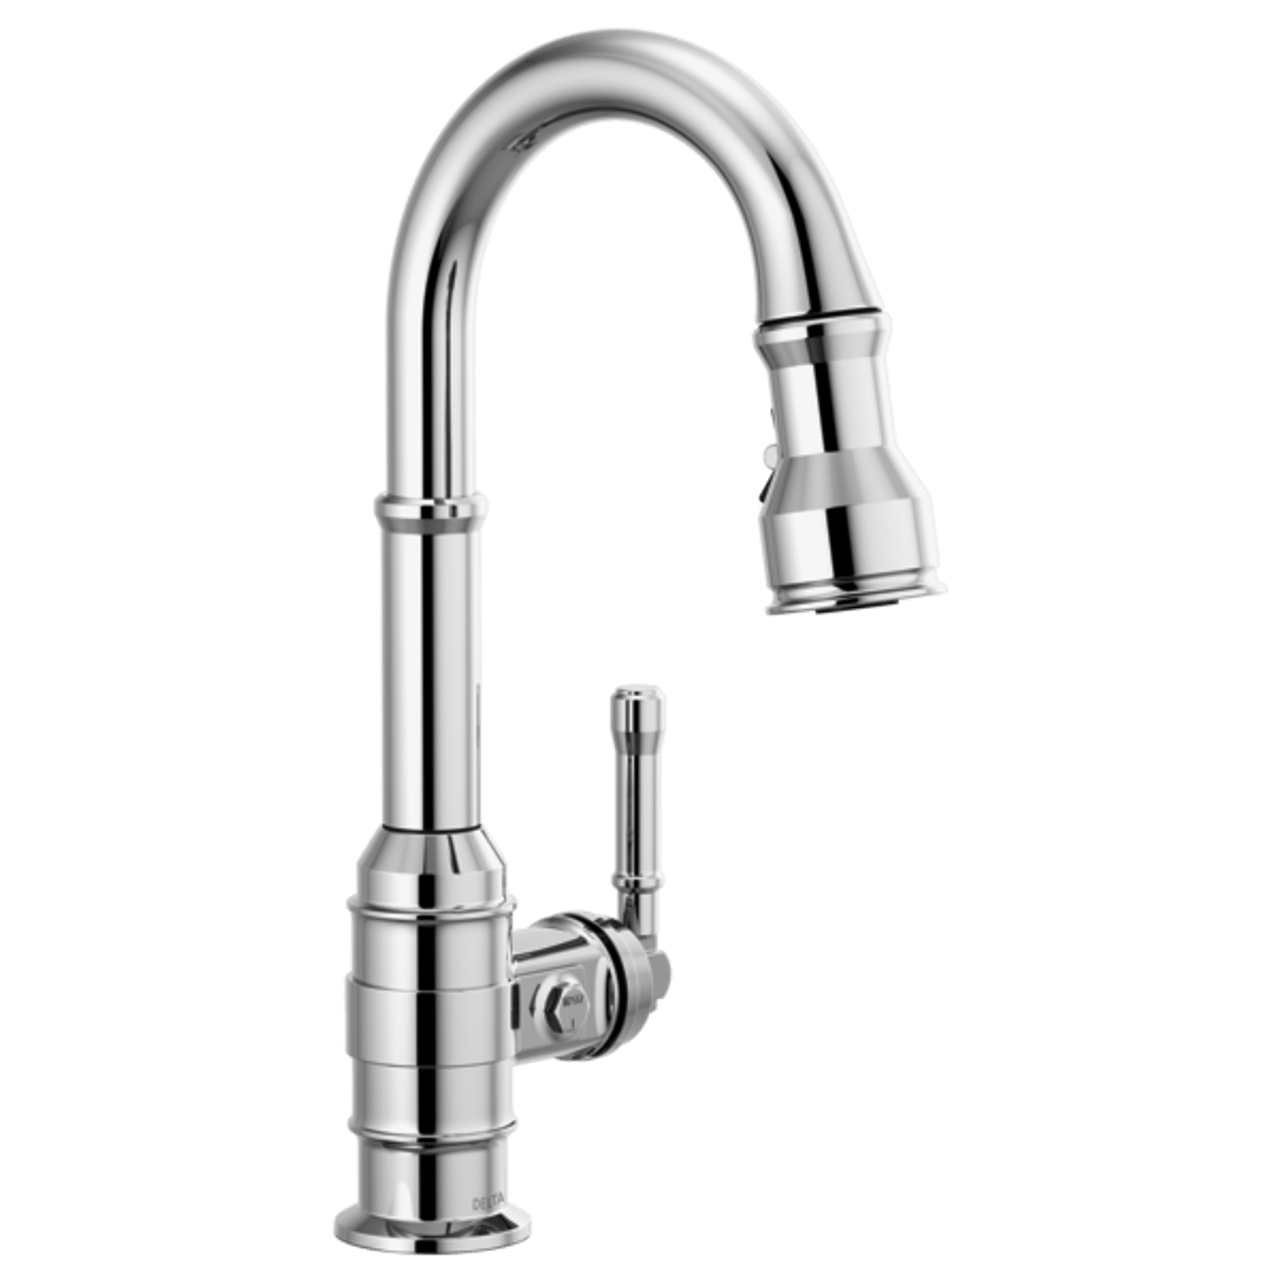 delta cassidy kitchen faucet with side spray includes lifetime warranty s